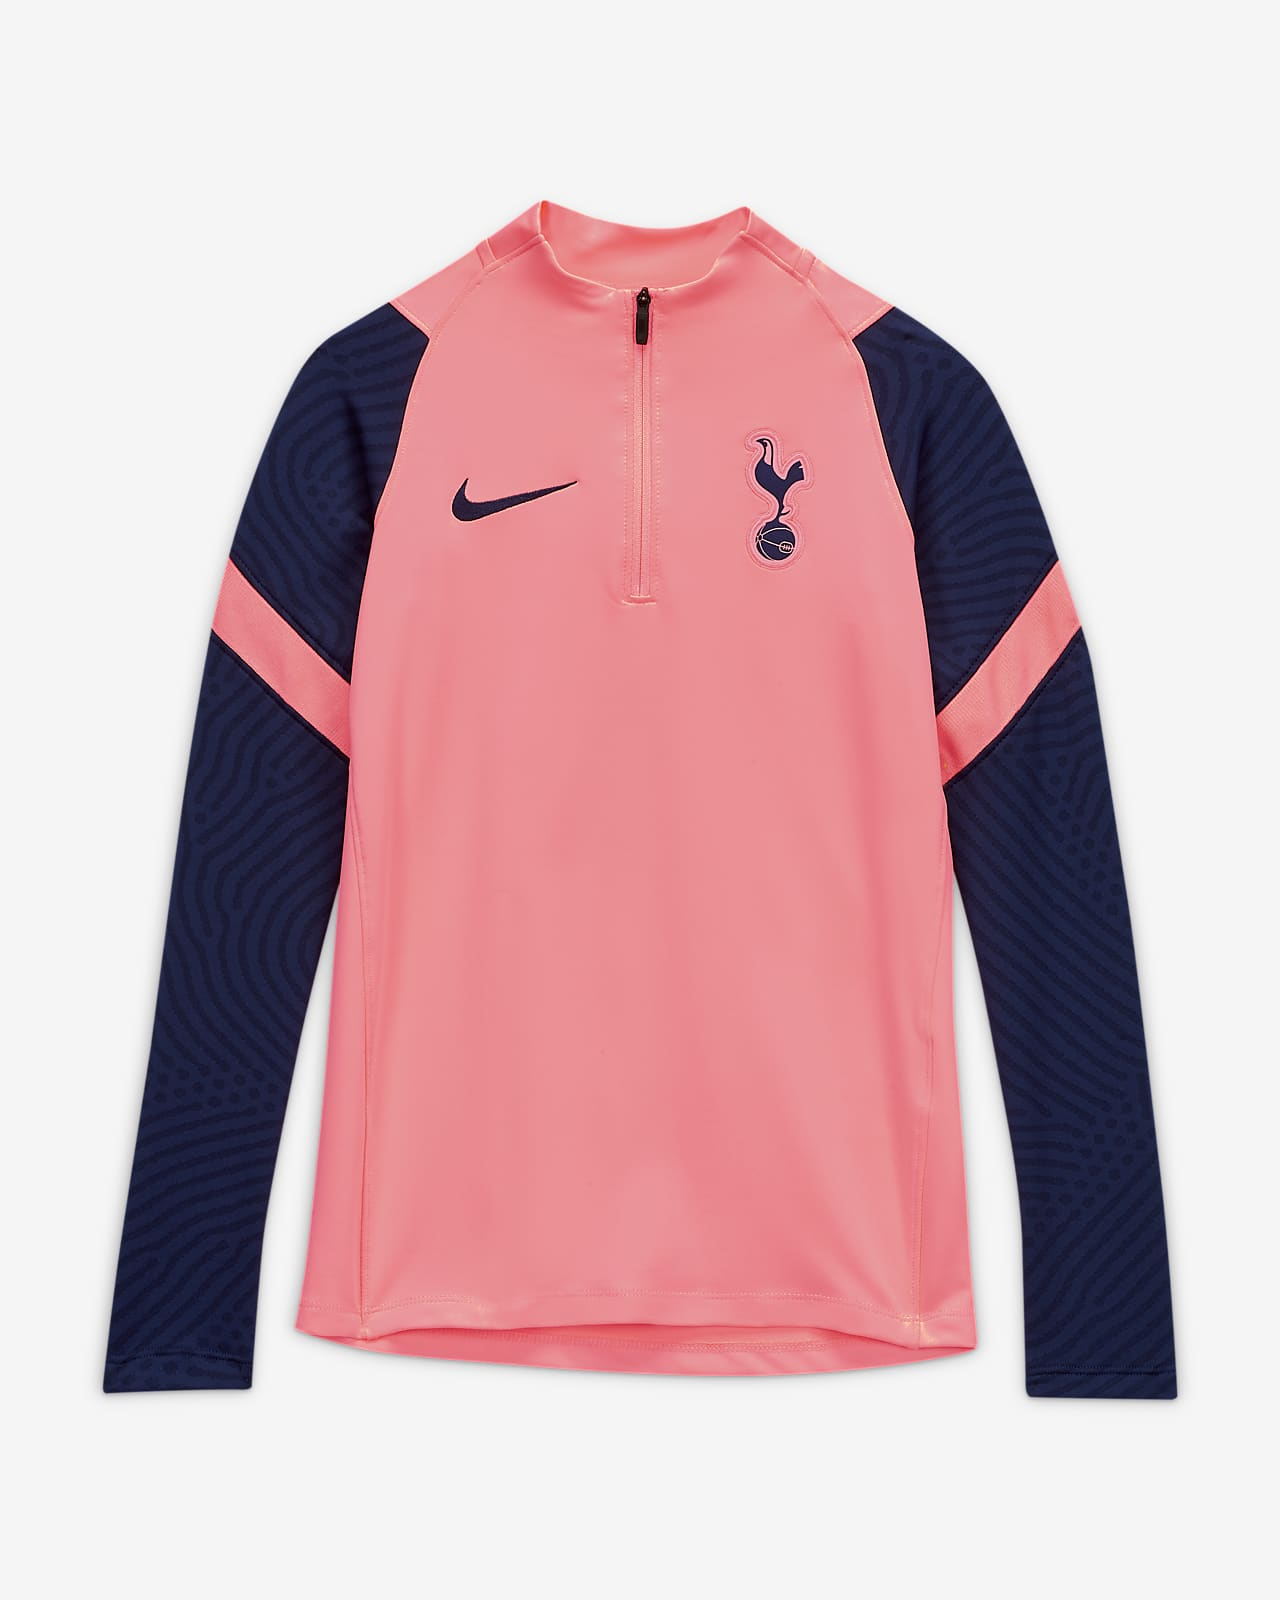 Tottenham Hotspur Strike Older Kids Football Drill Top Nike Eg